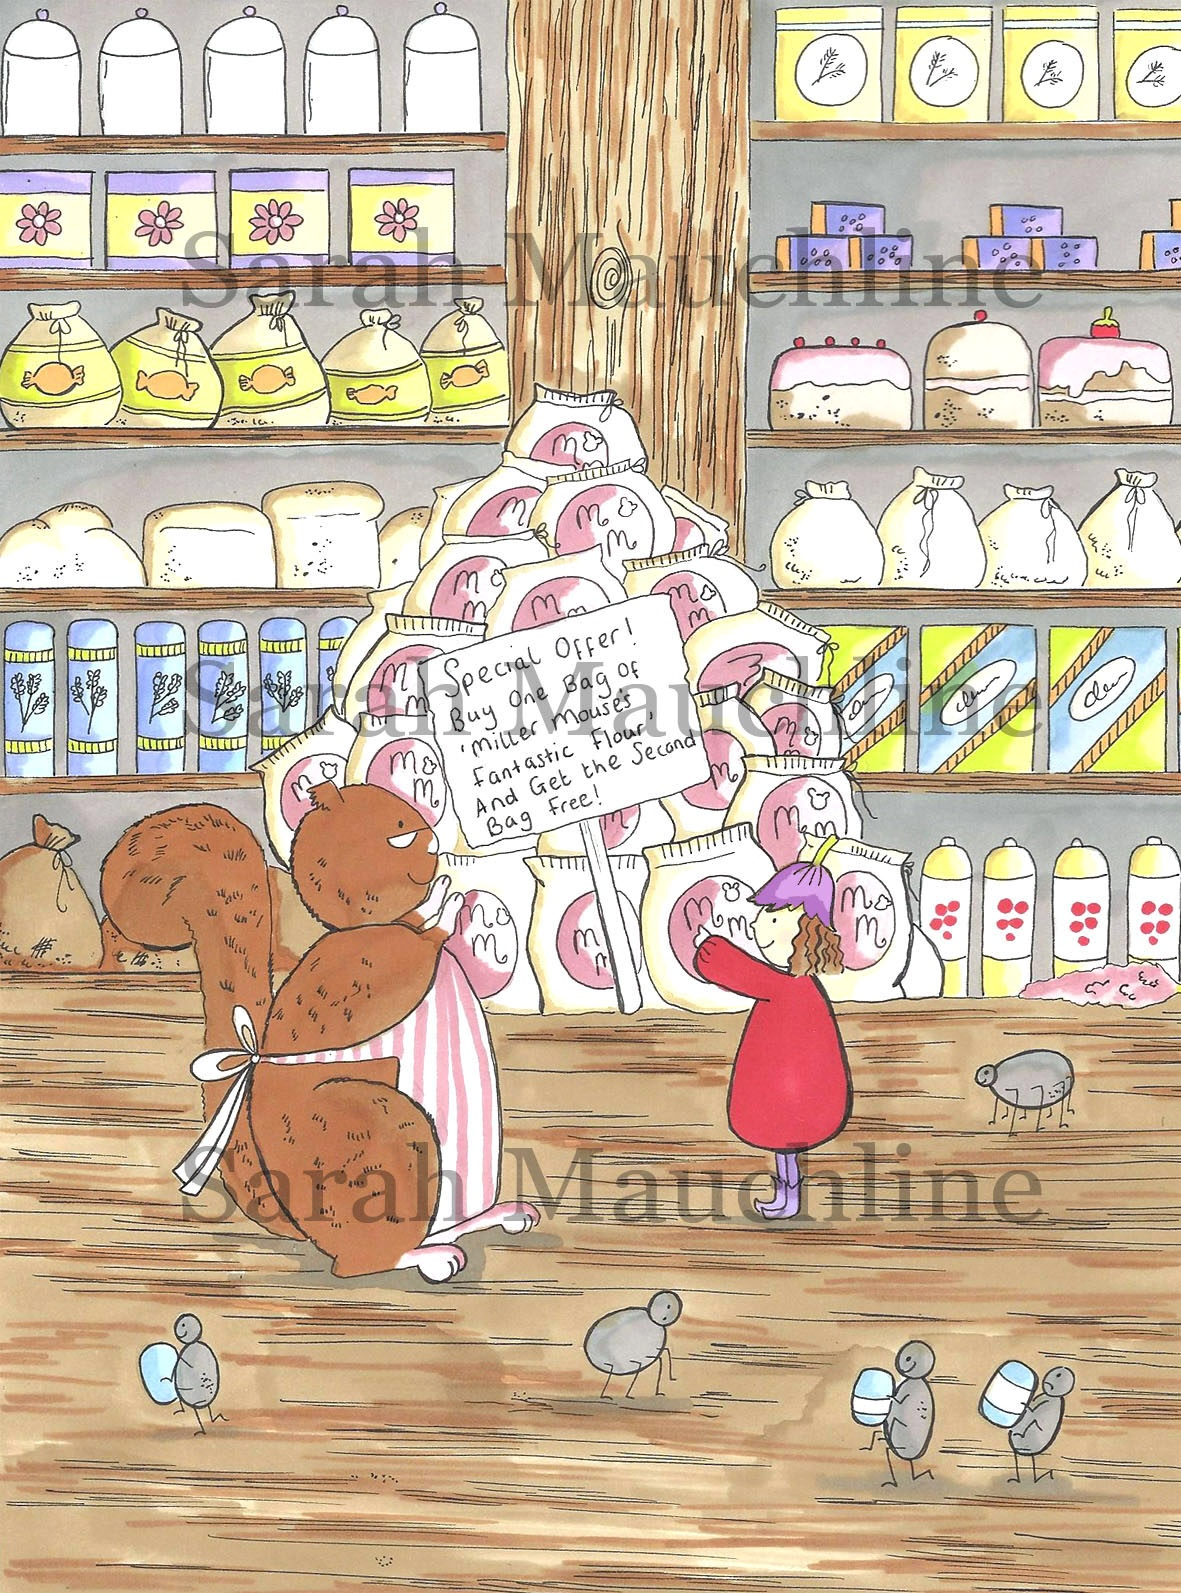 'Mrs Scarlet the squirrel' and 'Posie Pixie' in Whimsy Wood's 'Woodland Store' ?